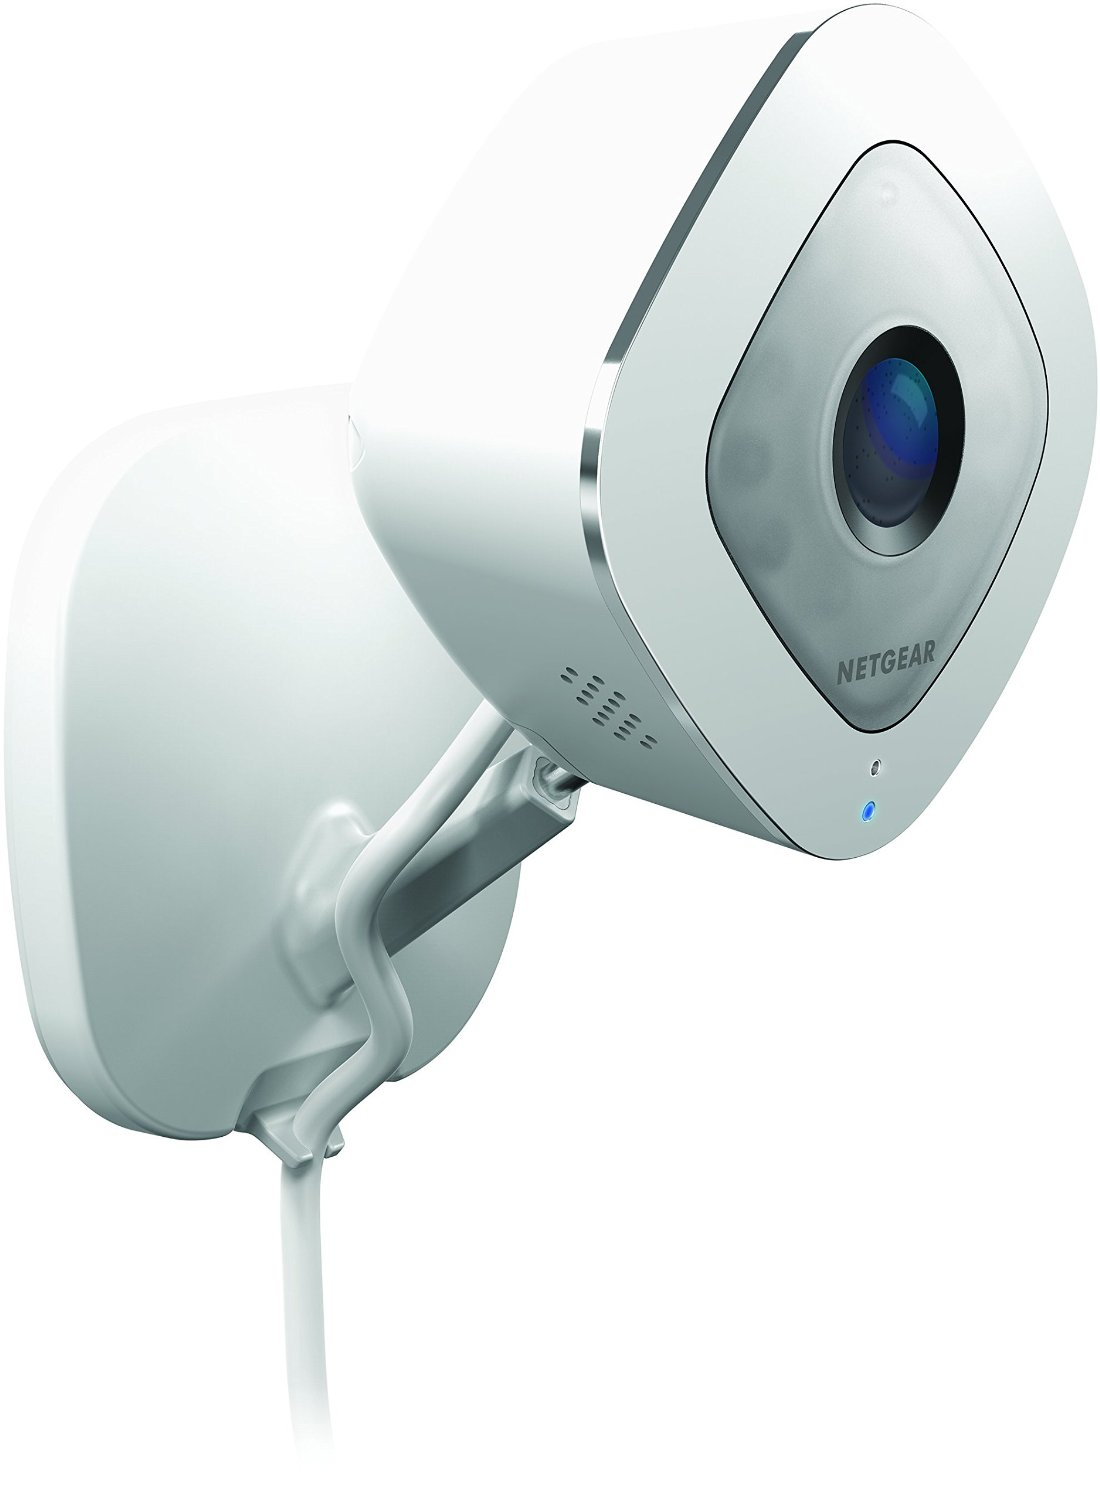 Do-You-Know-What-Are-are-the-Most-Effective-Home-Security-Systems-To-Use-in-a-Business-to-Get-Evid-wallpaper-wp360119